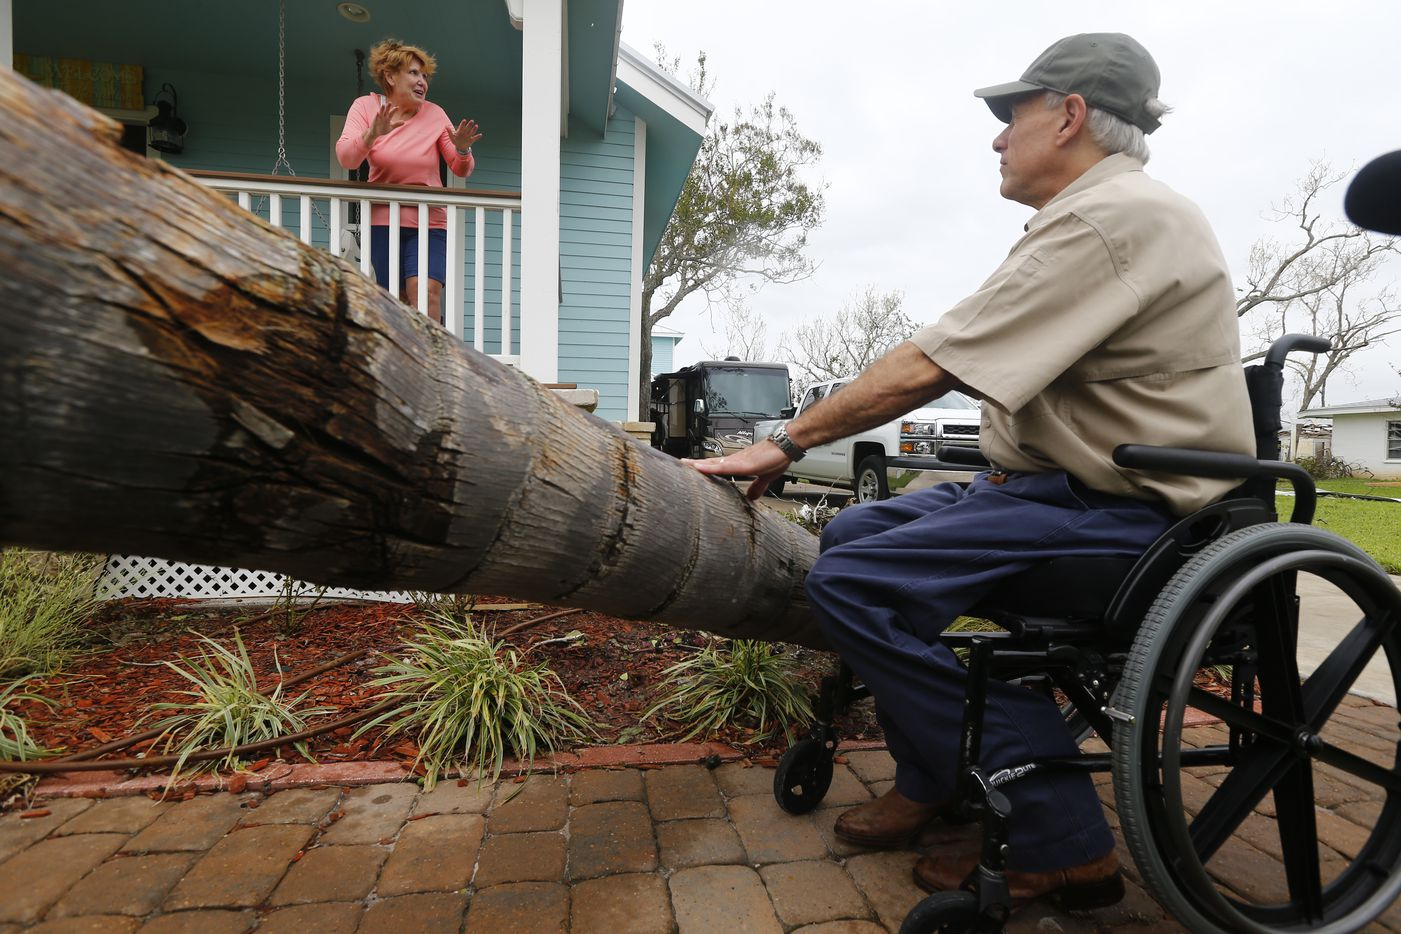 Marsha Brundett tells Texas Gov. Greg Abbott about riding out the storm as he tours damage from Hurricane Harvey in Rockport, Texas on Aug. 28, 2017.